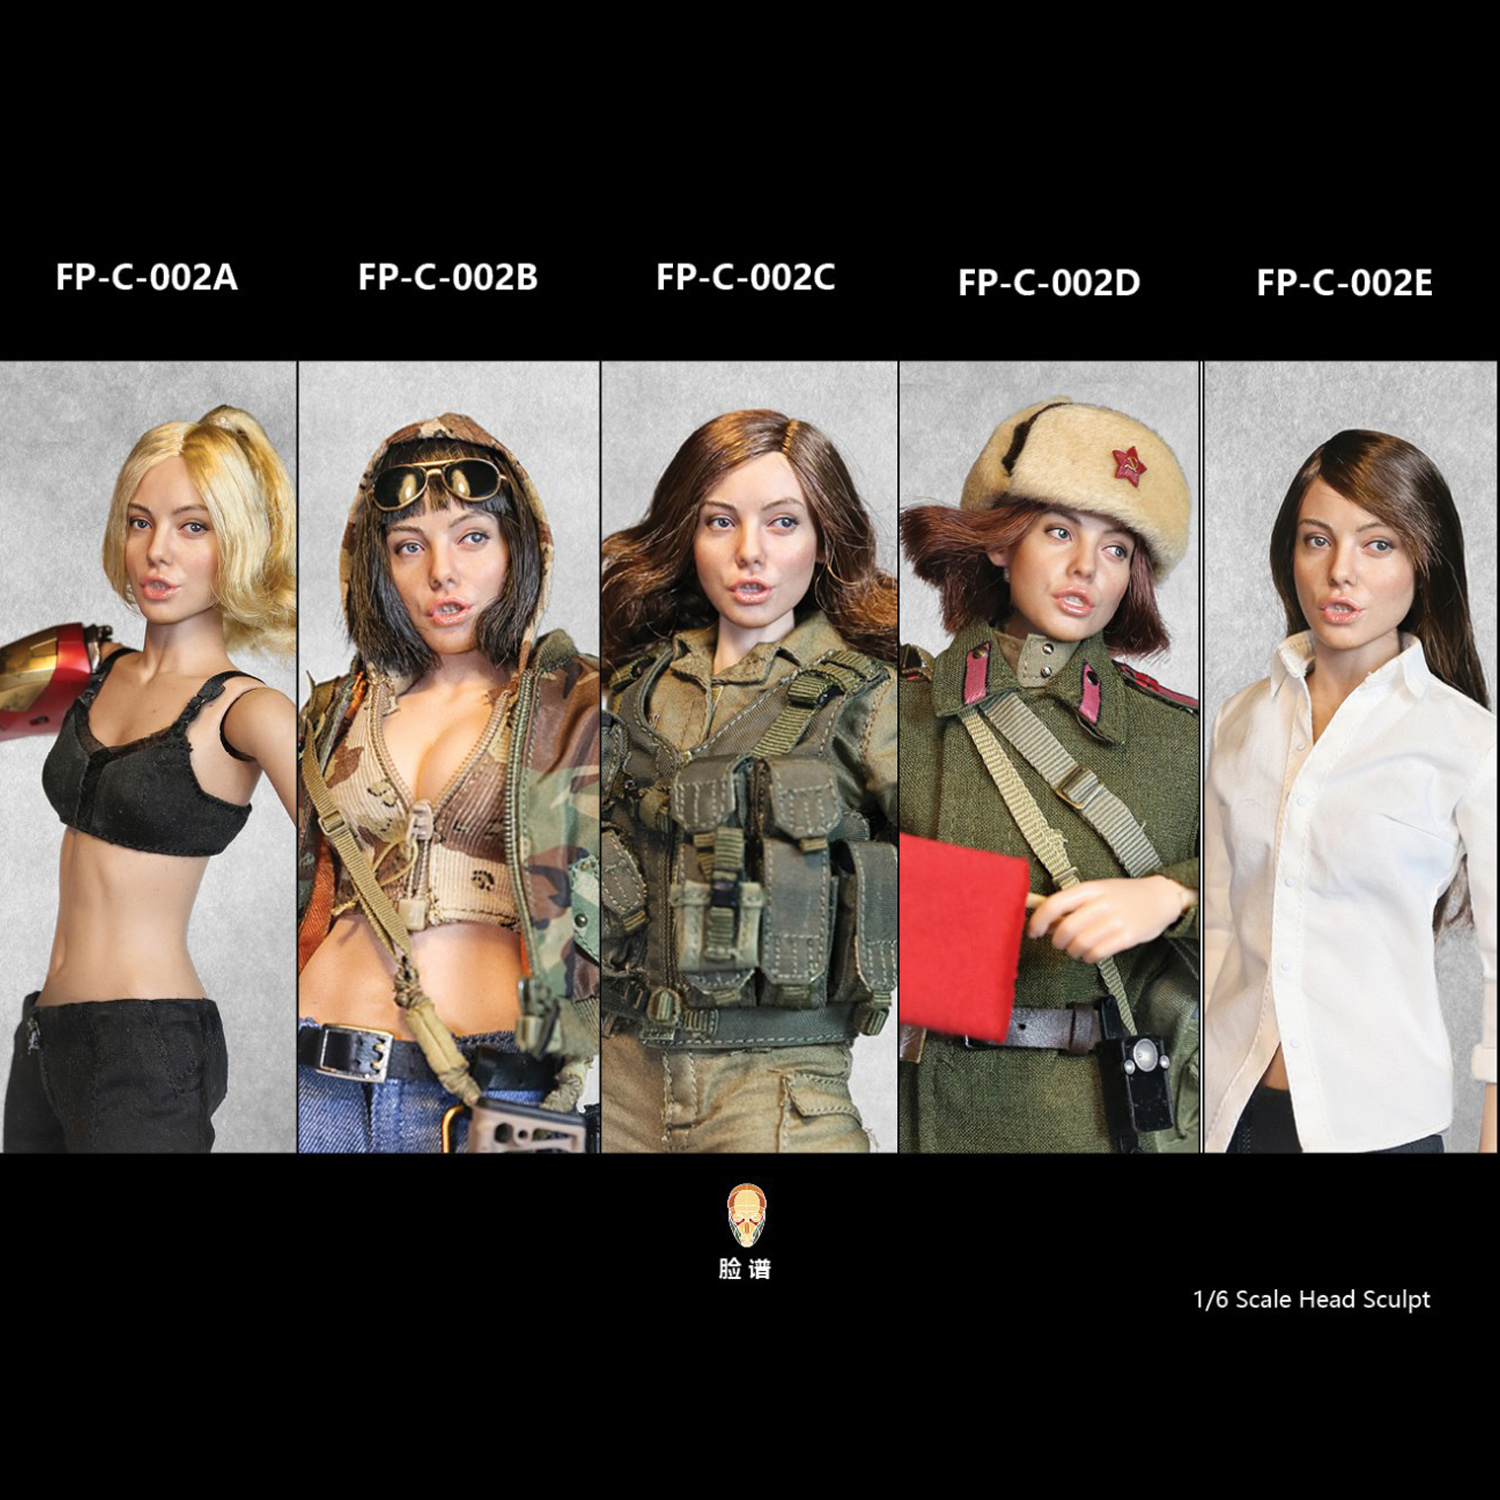 Facepoolfigure FP-C-002 D 1//6 Root Hair Female Head Sculpt with Expression